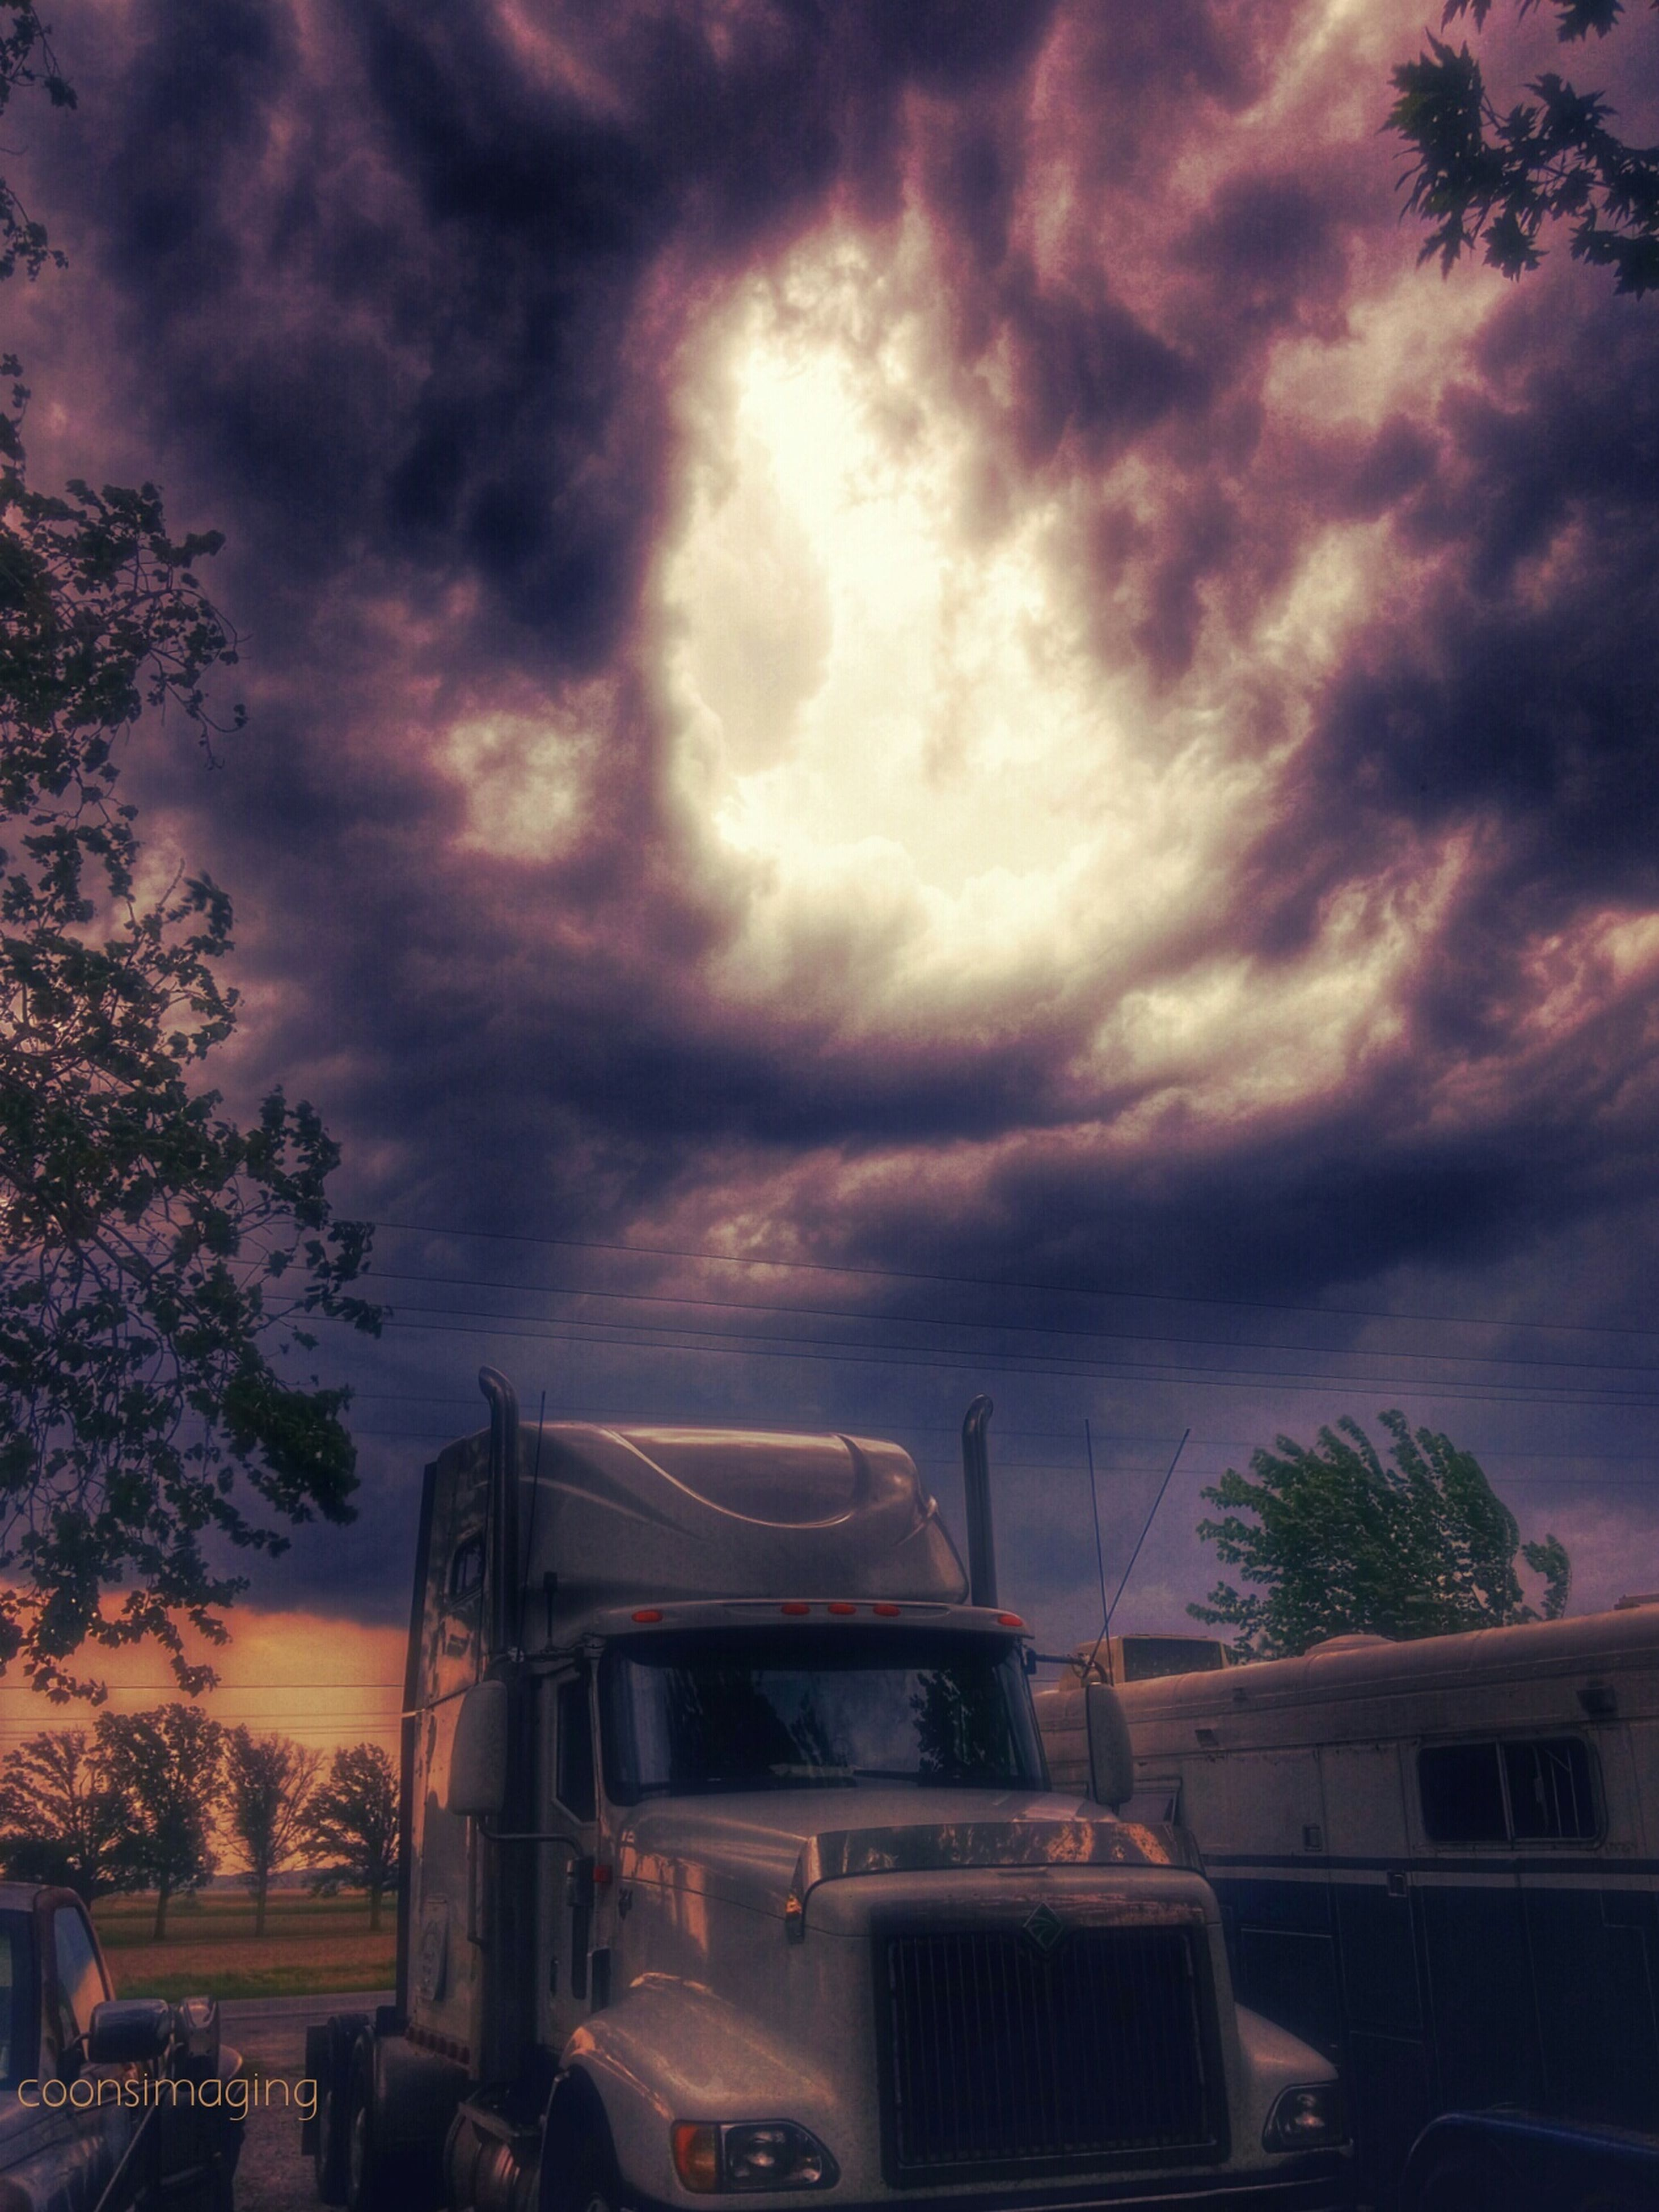 sky, cloud - sky, cloudy, land vehicle, car, transportation, weather, storm cloud, building exterior, mode of transport, overcast, sunset, built structure, architecture, dramatic sky, tree, dusk, cloud, atmospheric mood, house